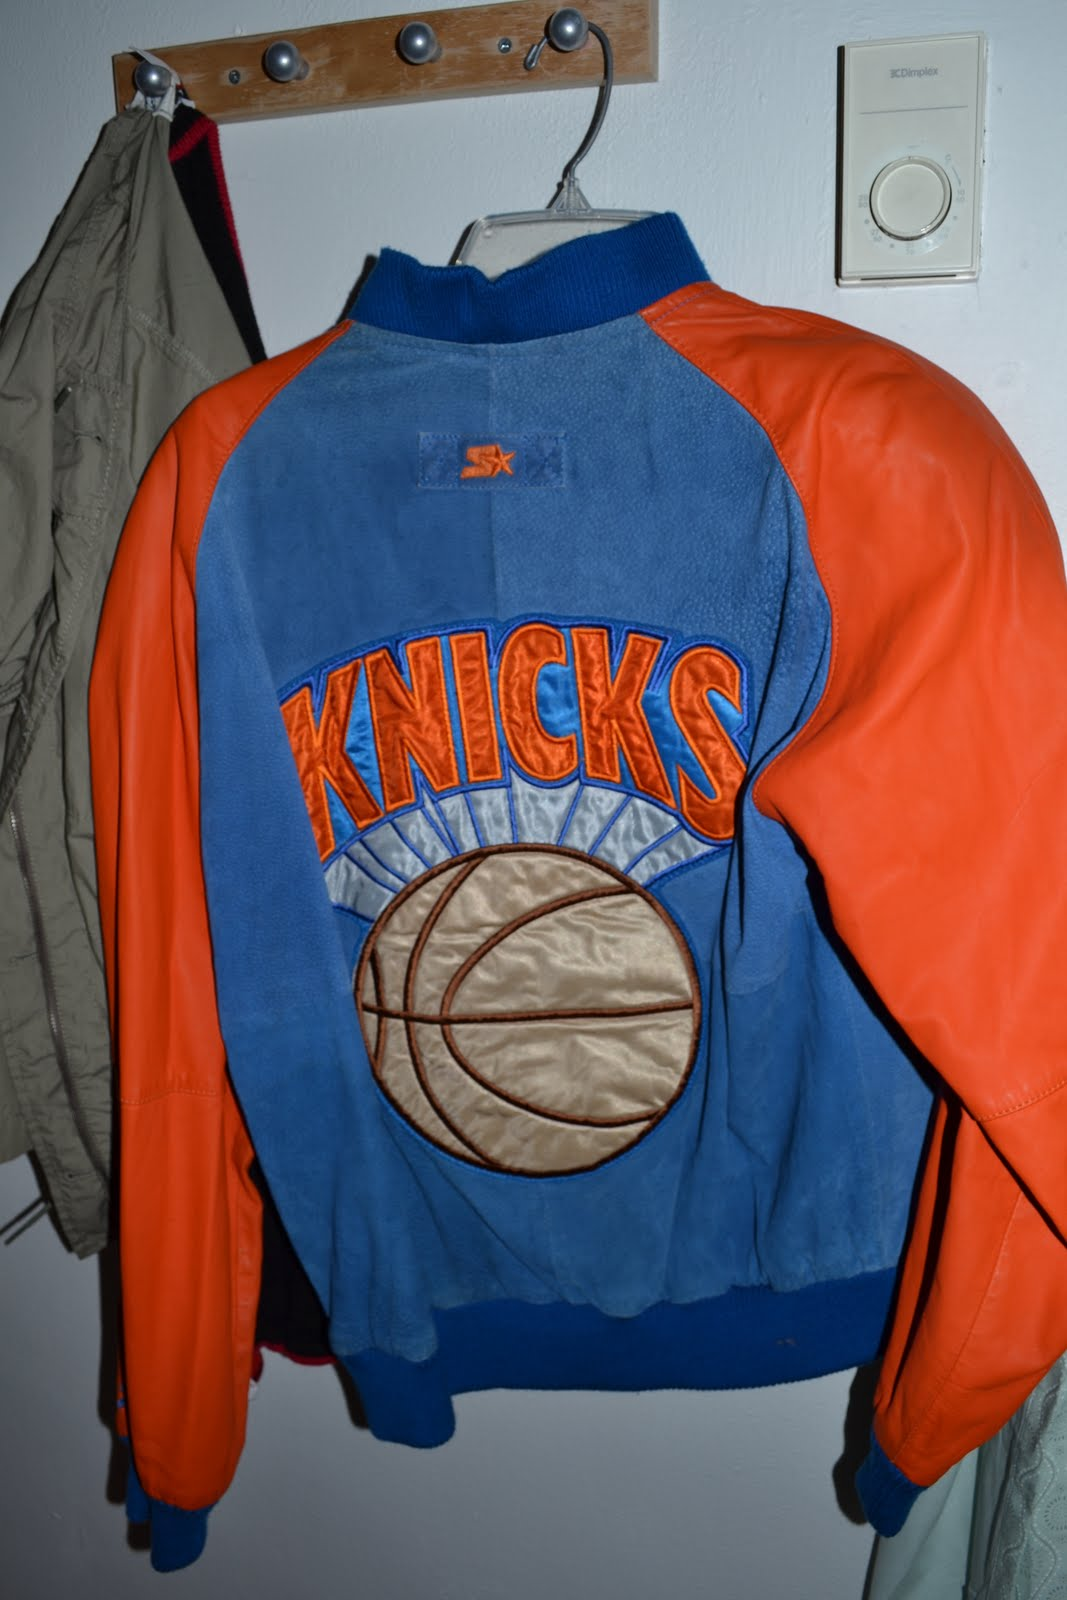 04d43aec7 Some would say that I felt compelled to leave New York after the Knicks  unceremoniously traded Patrick Ewing to the Seattle Supersonics.